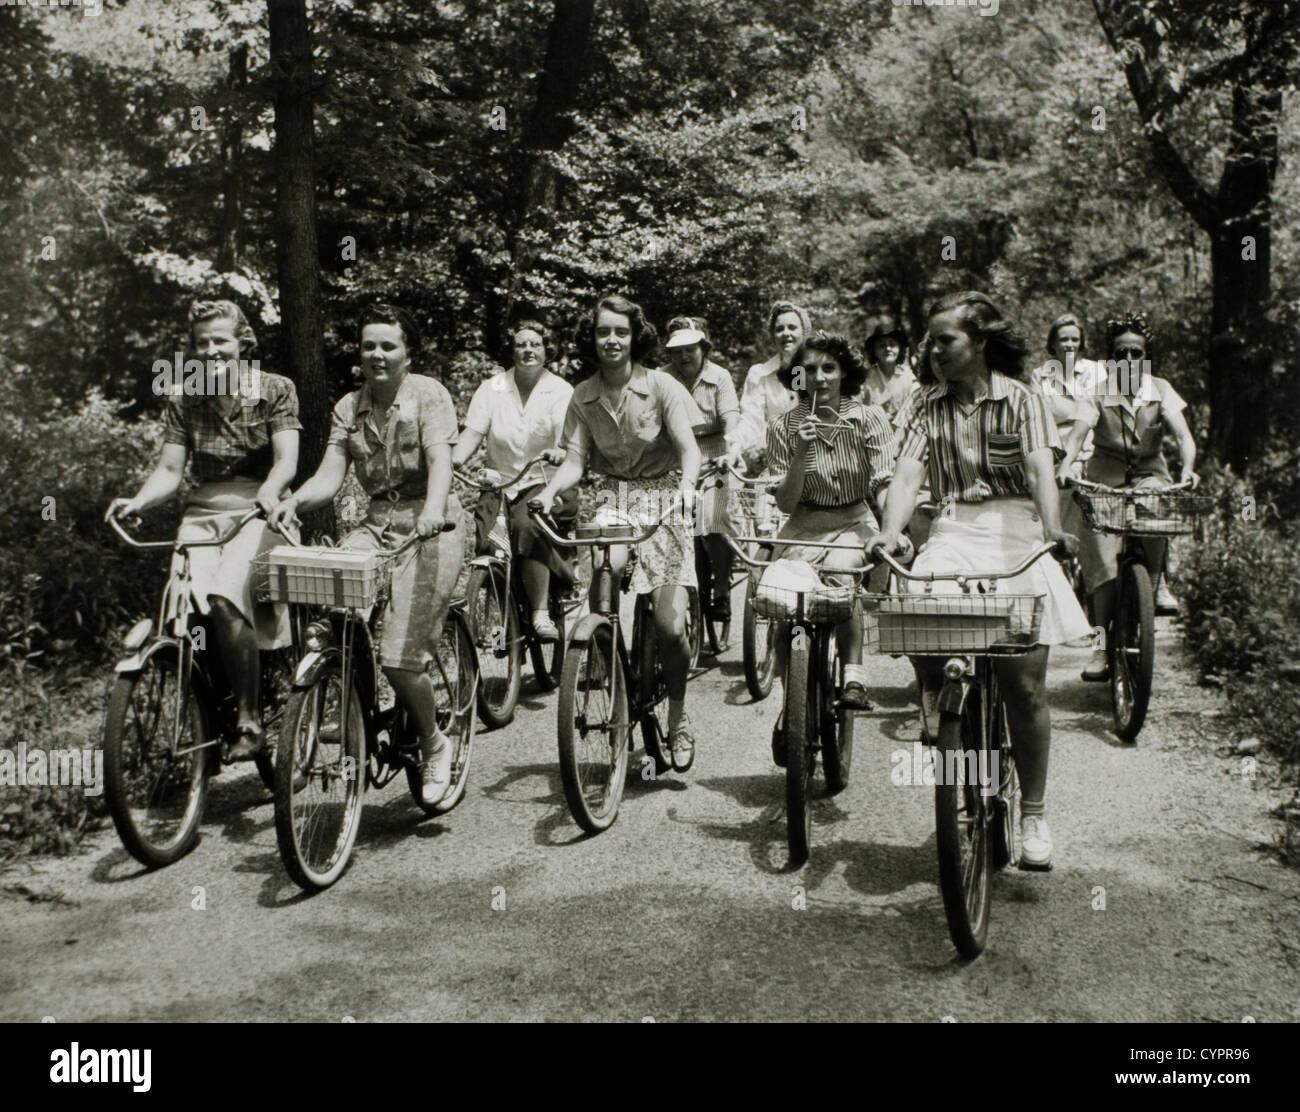 Group of Women Cyclists on Dirt Road, USA, 1950 - Stock Image